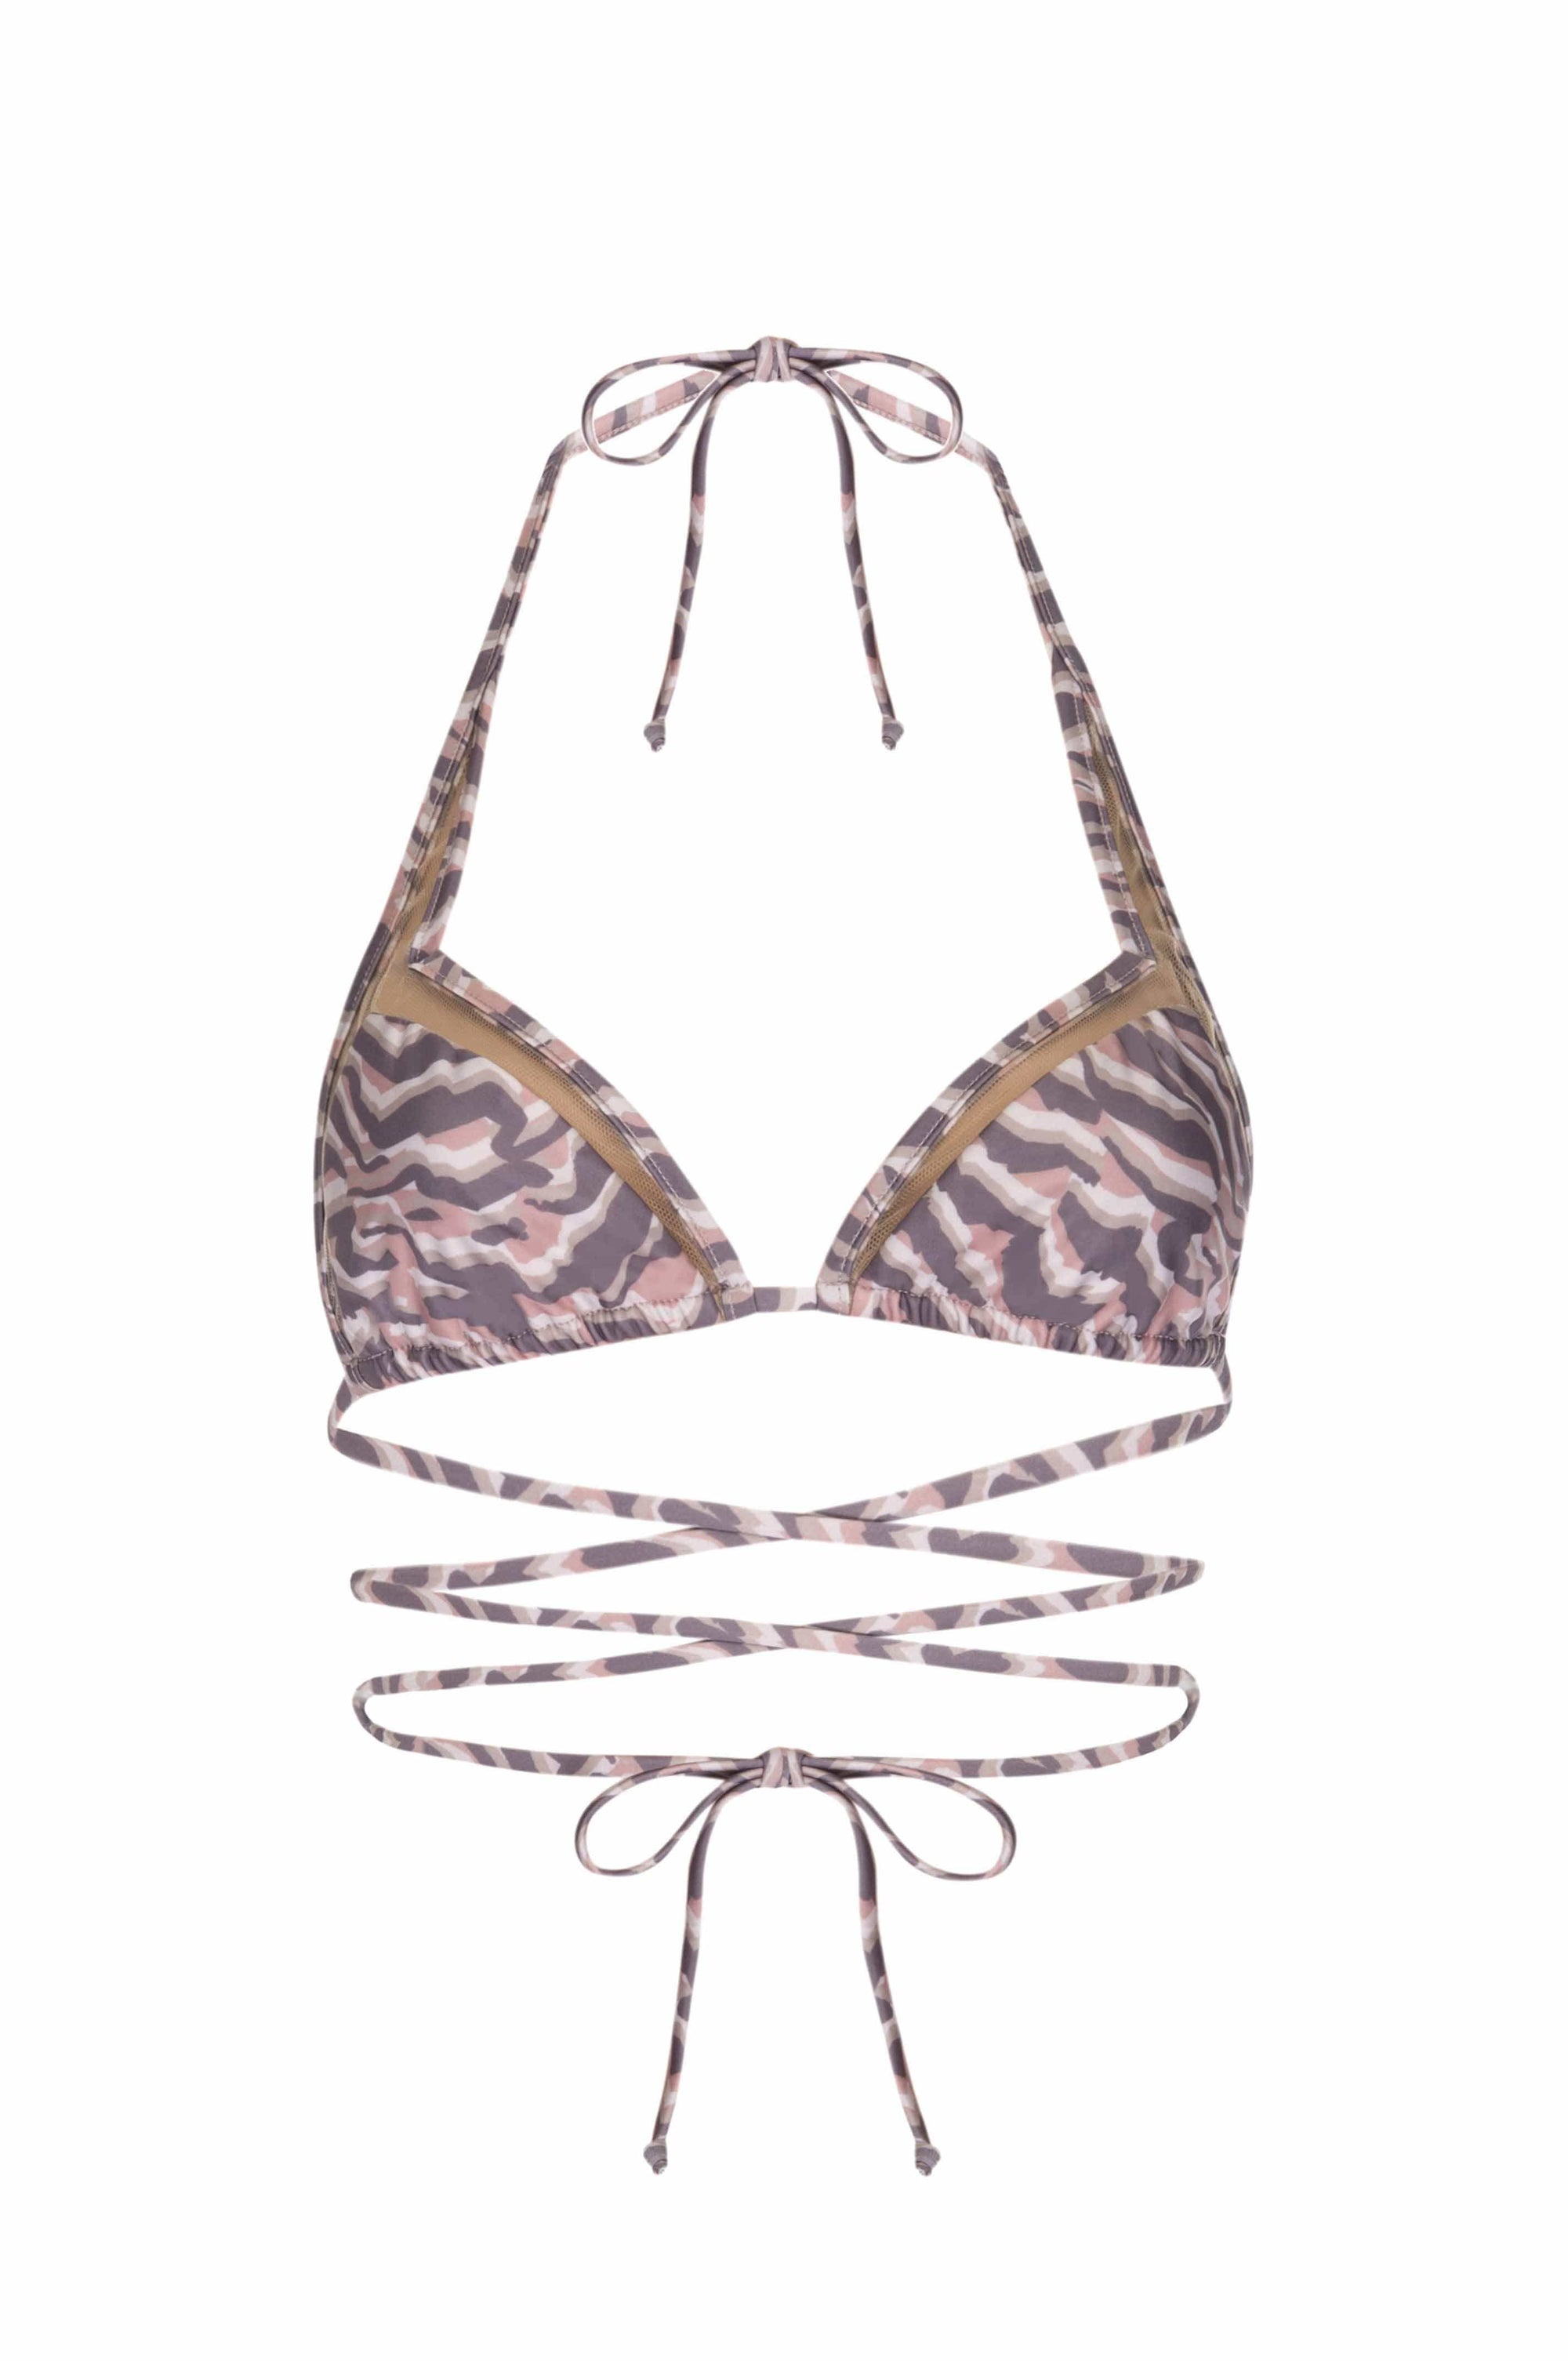 MAI MIA Bikini Top S / ZEBRA WISTERIA CUT OUT STRING KINI TOP - ZEBRA WISTERIA